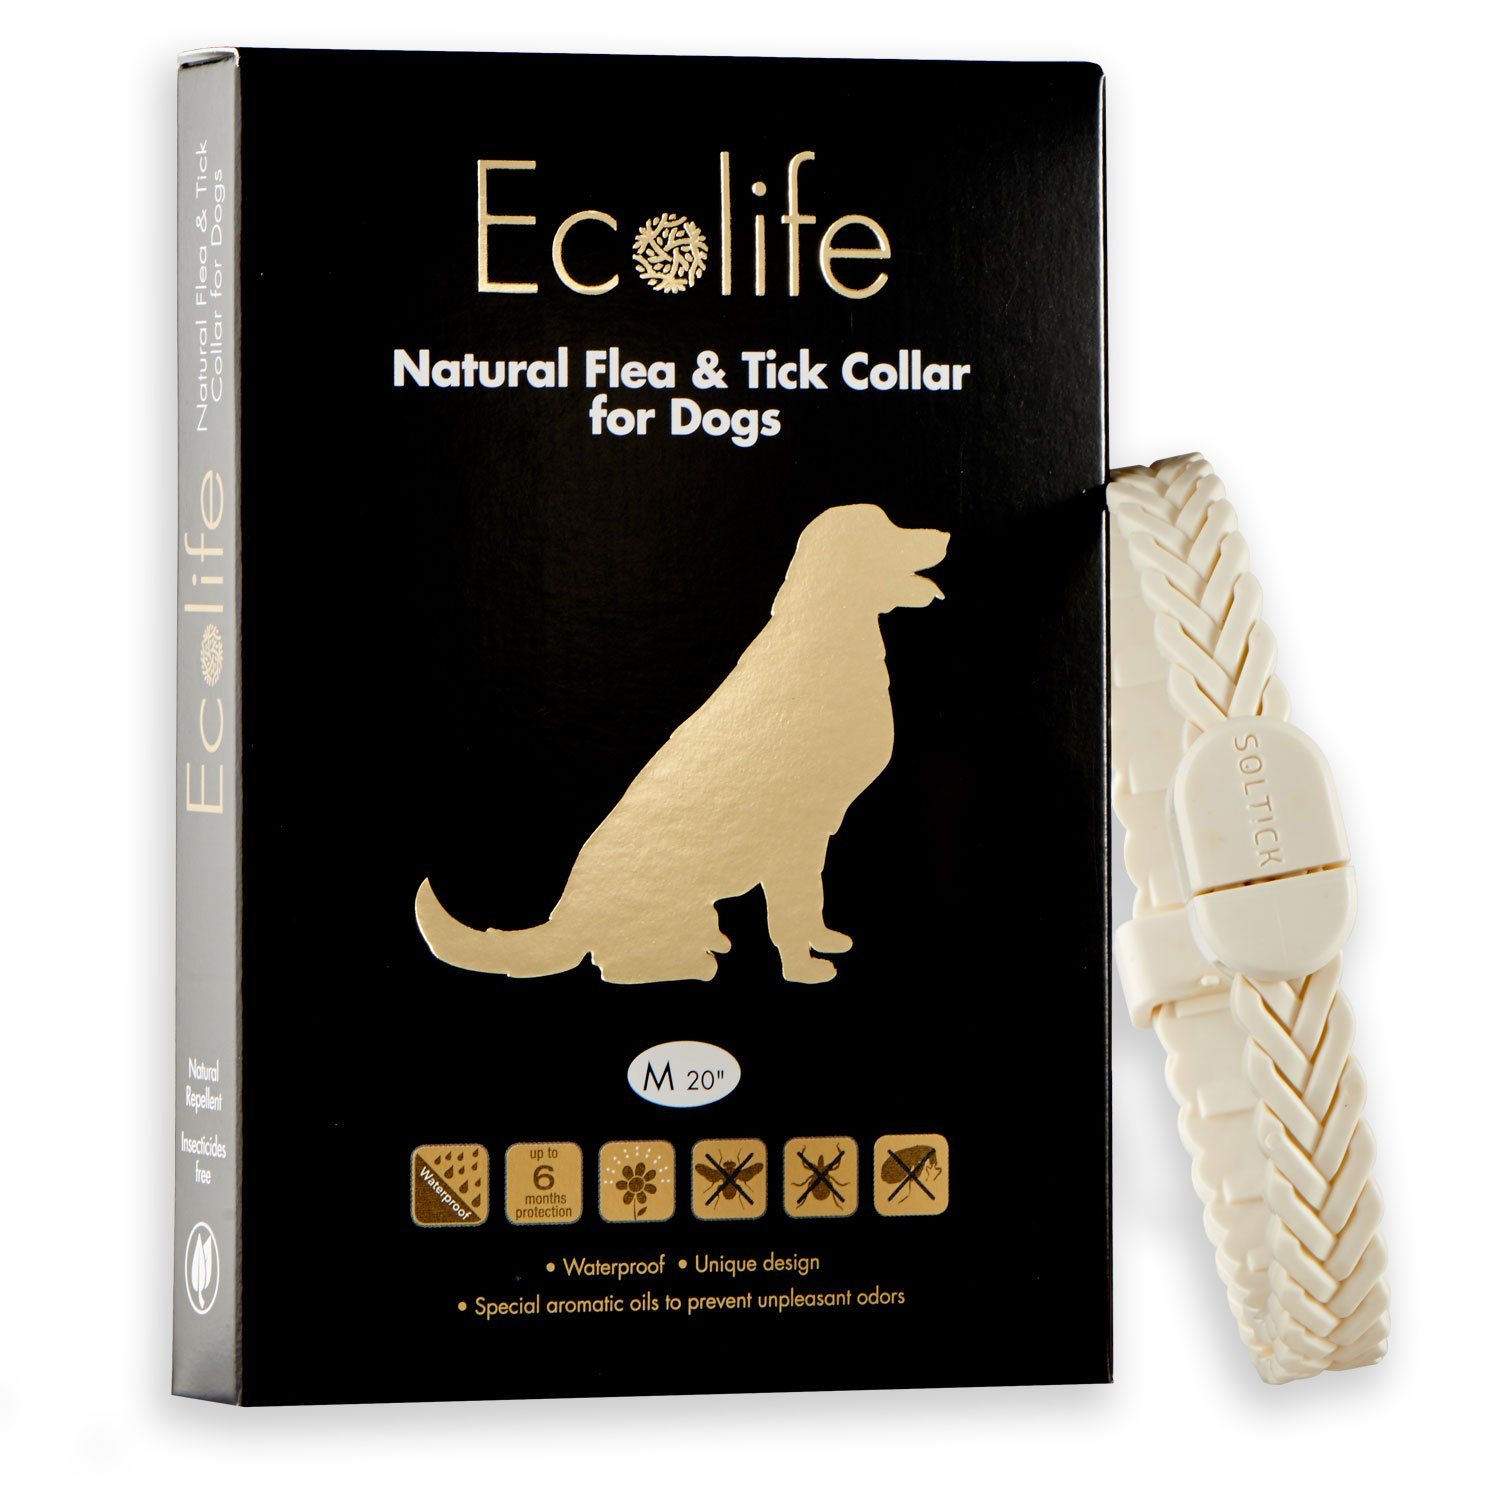 Ecolife All Natural Flea And Tick Collar For Dogs And Puppies Providing Flea and Tick Prevention For 6 Months Waterproof (Medium, White)